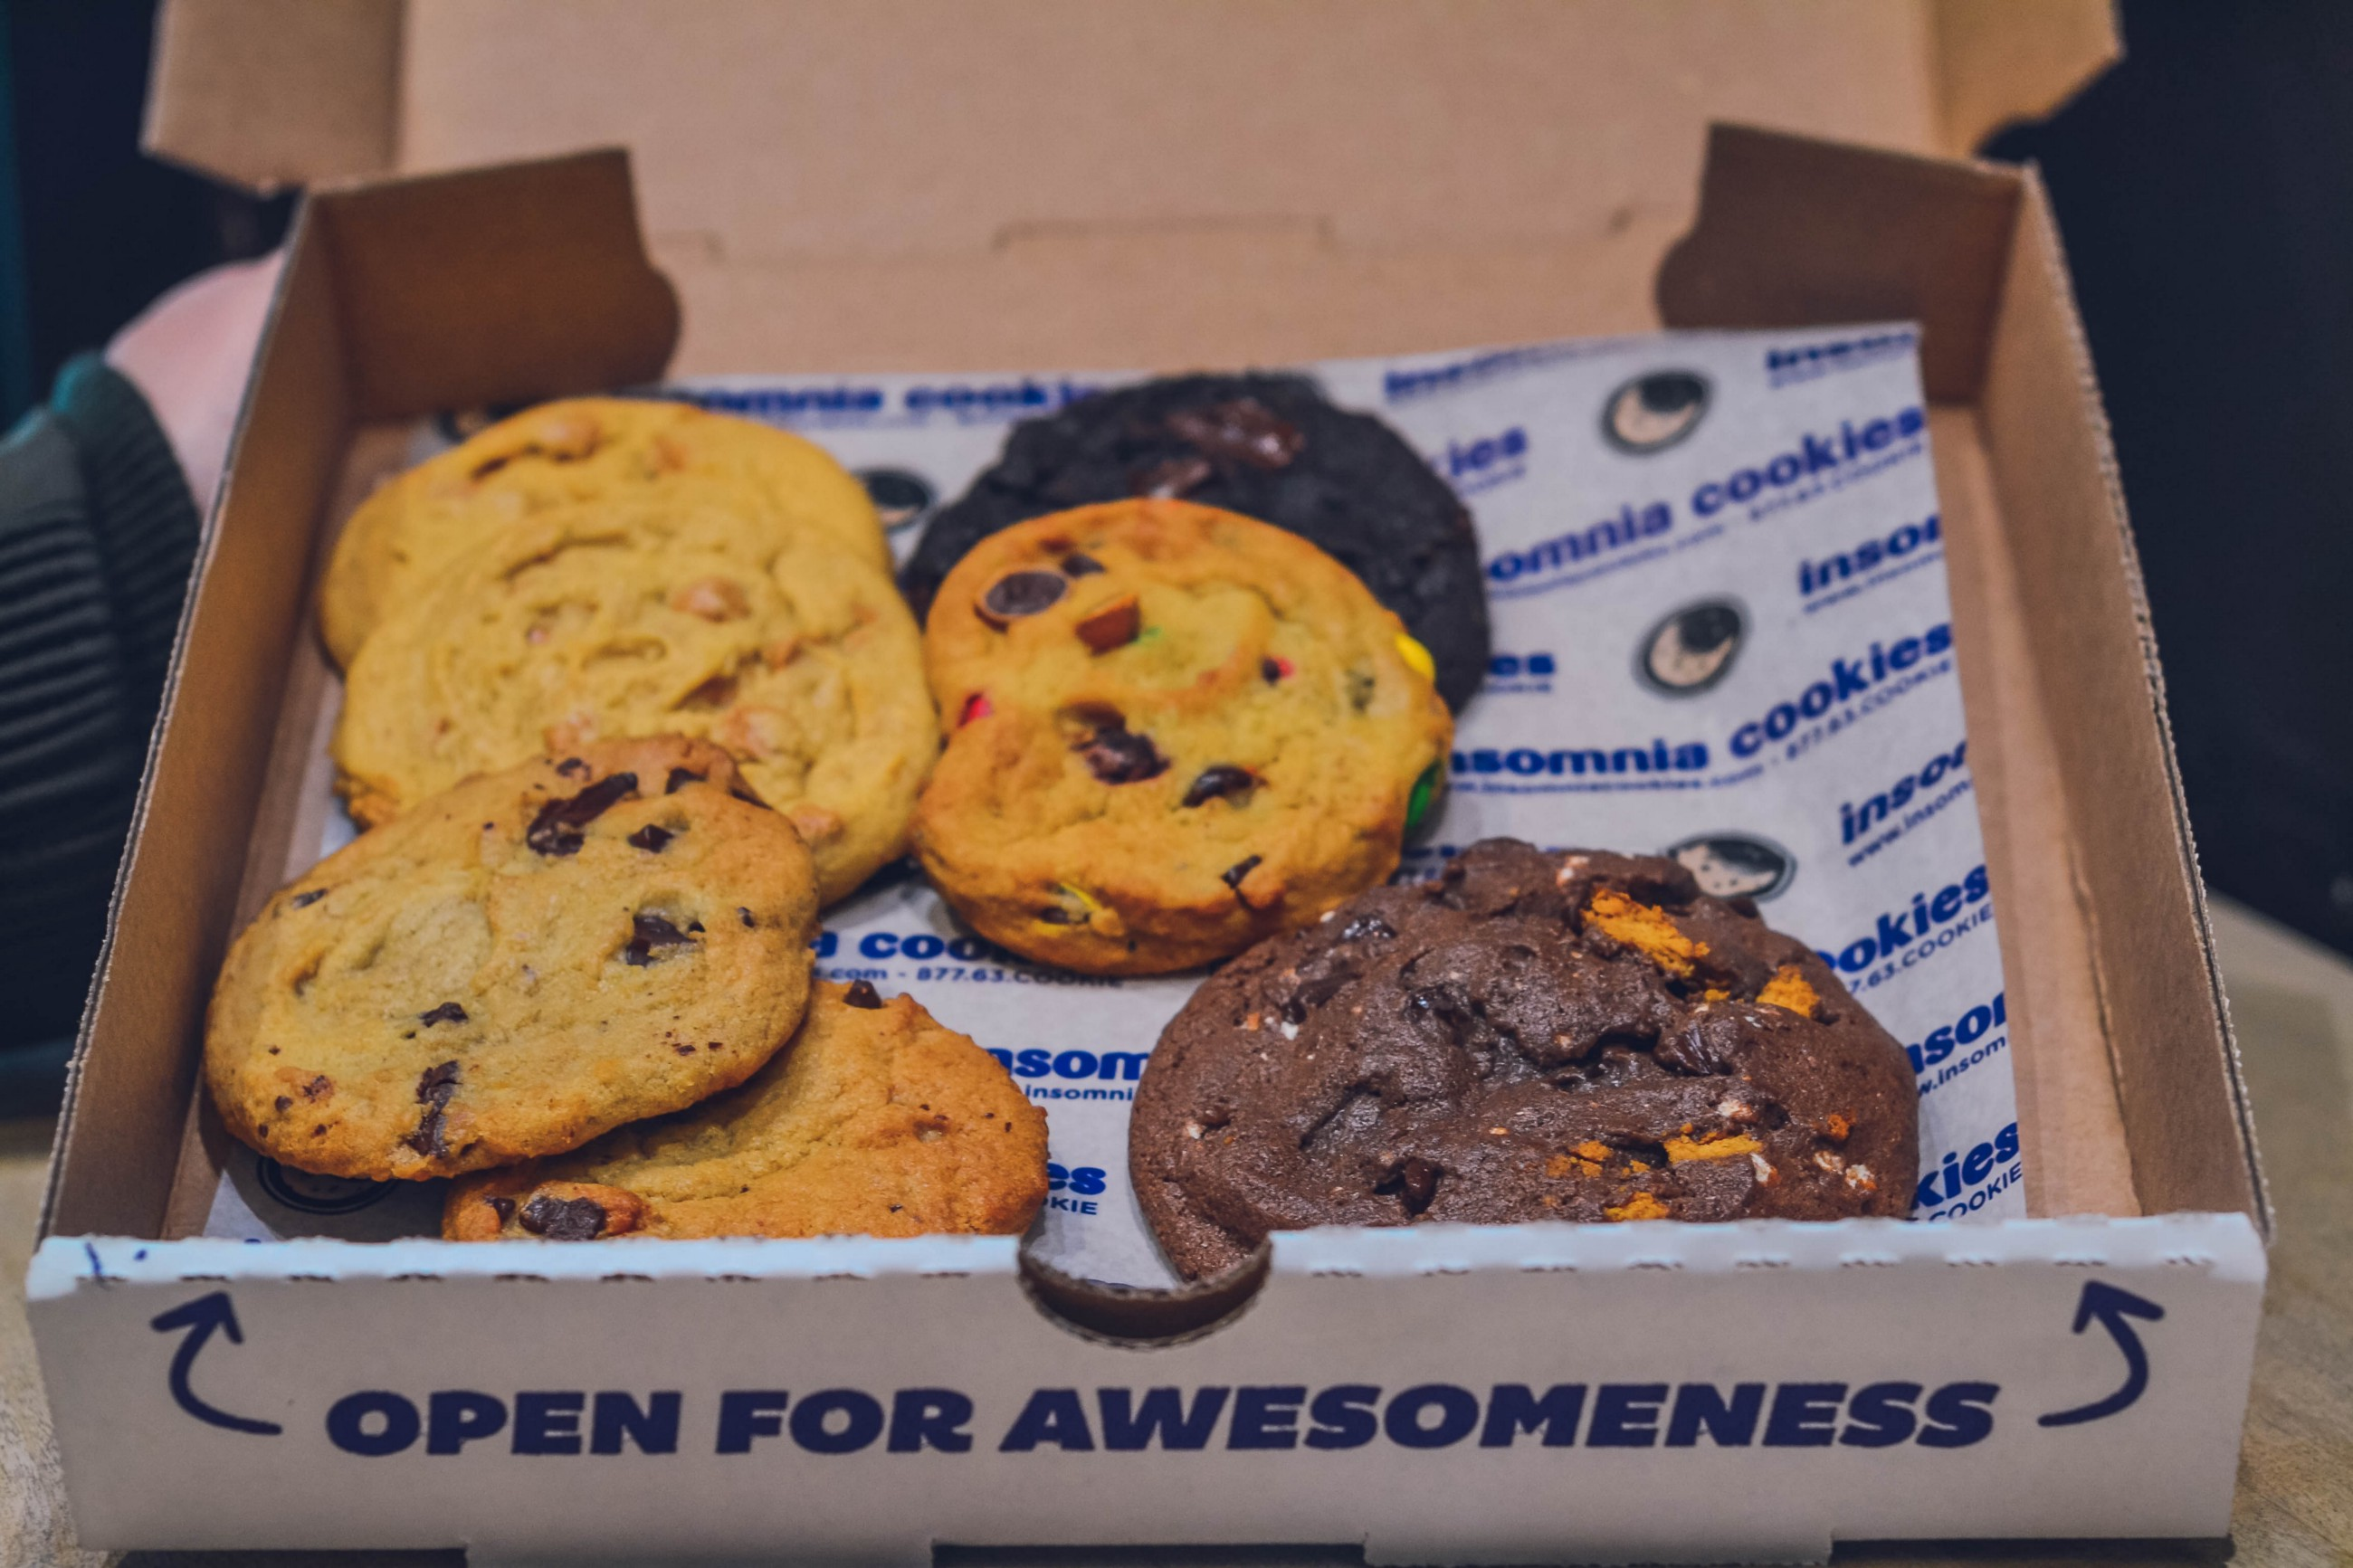 The Insomnia Cookies student marketing strategy